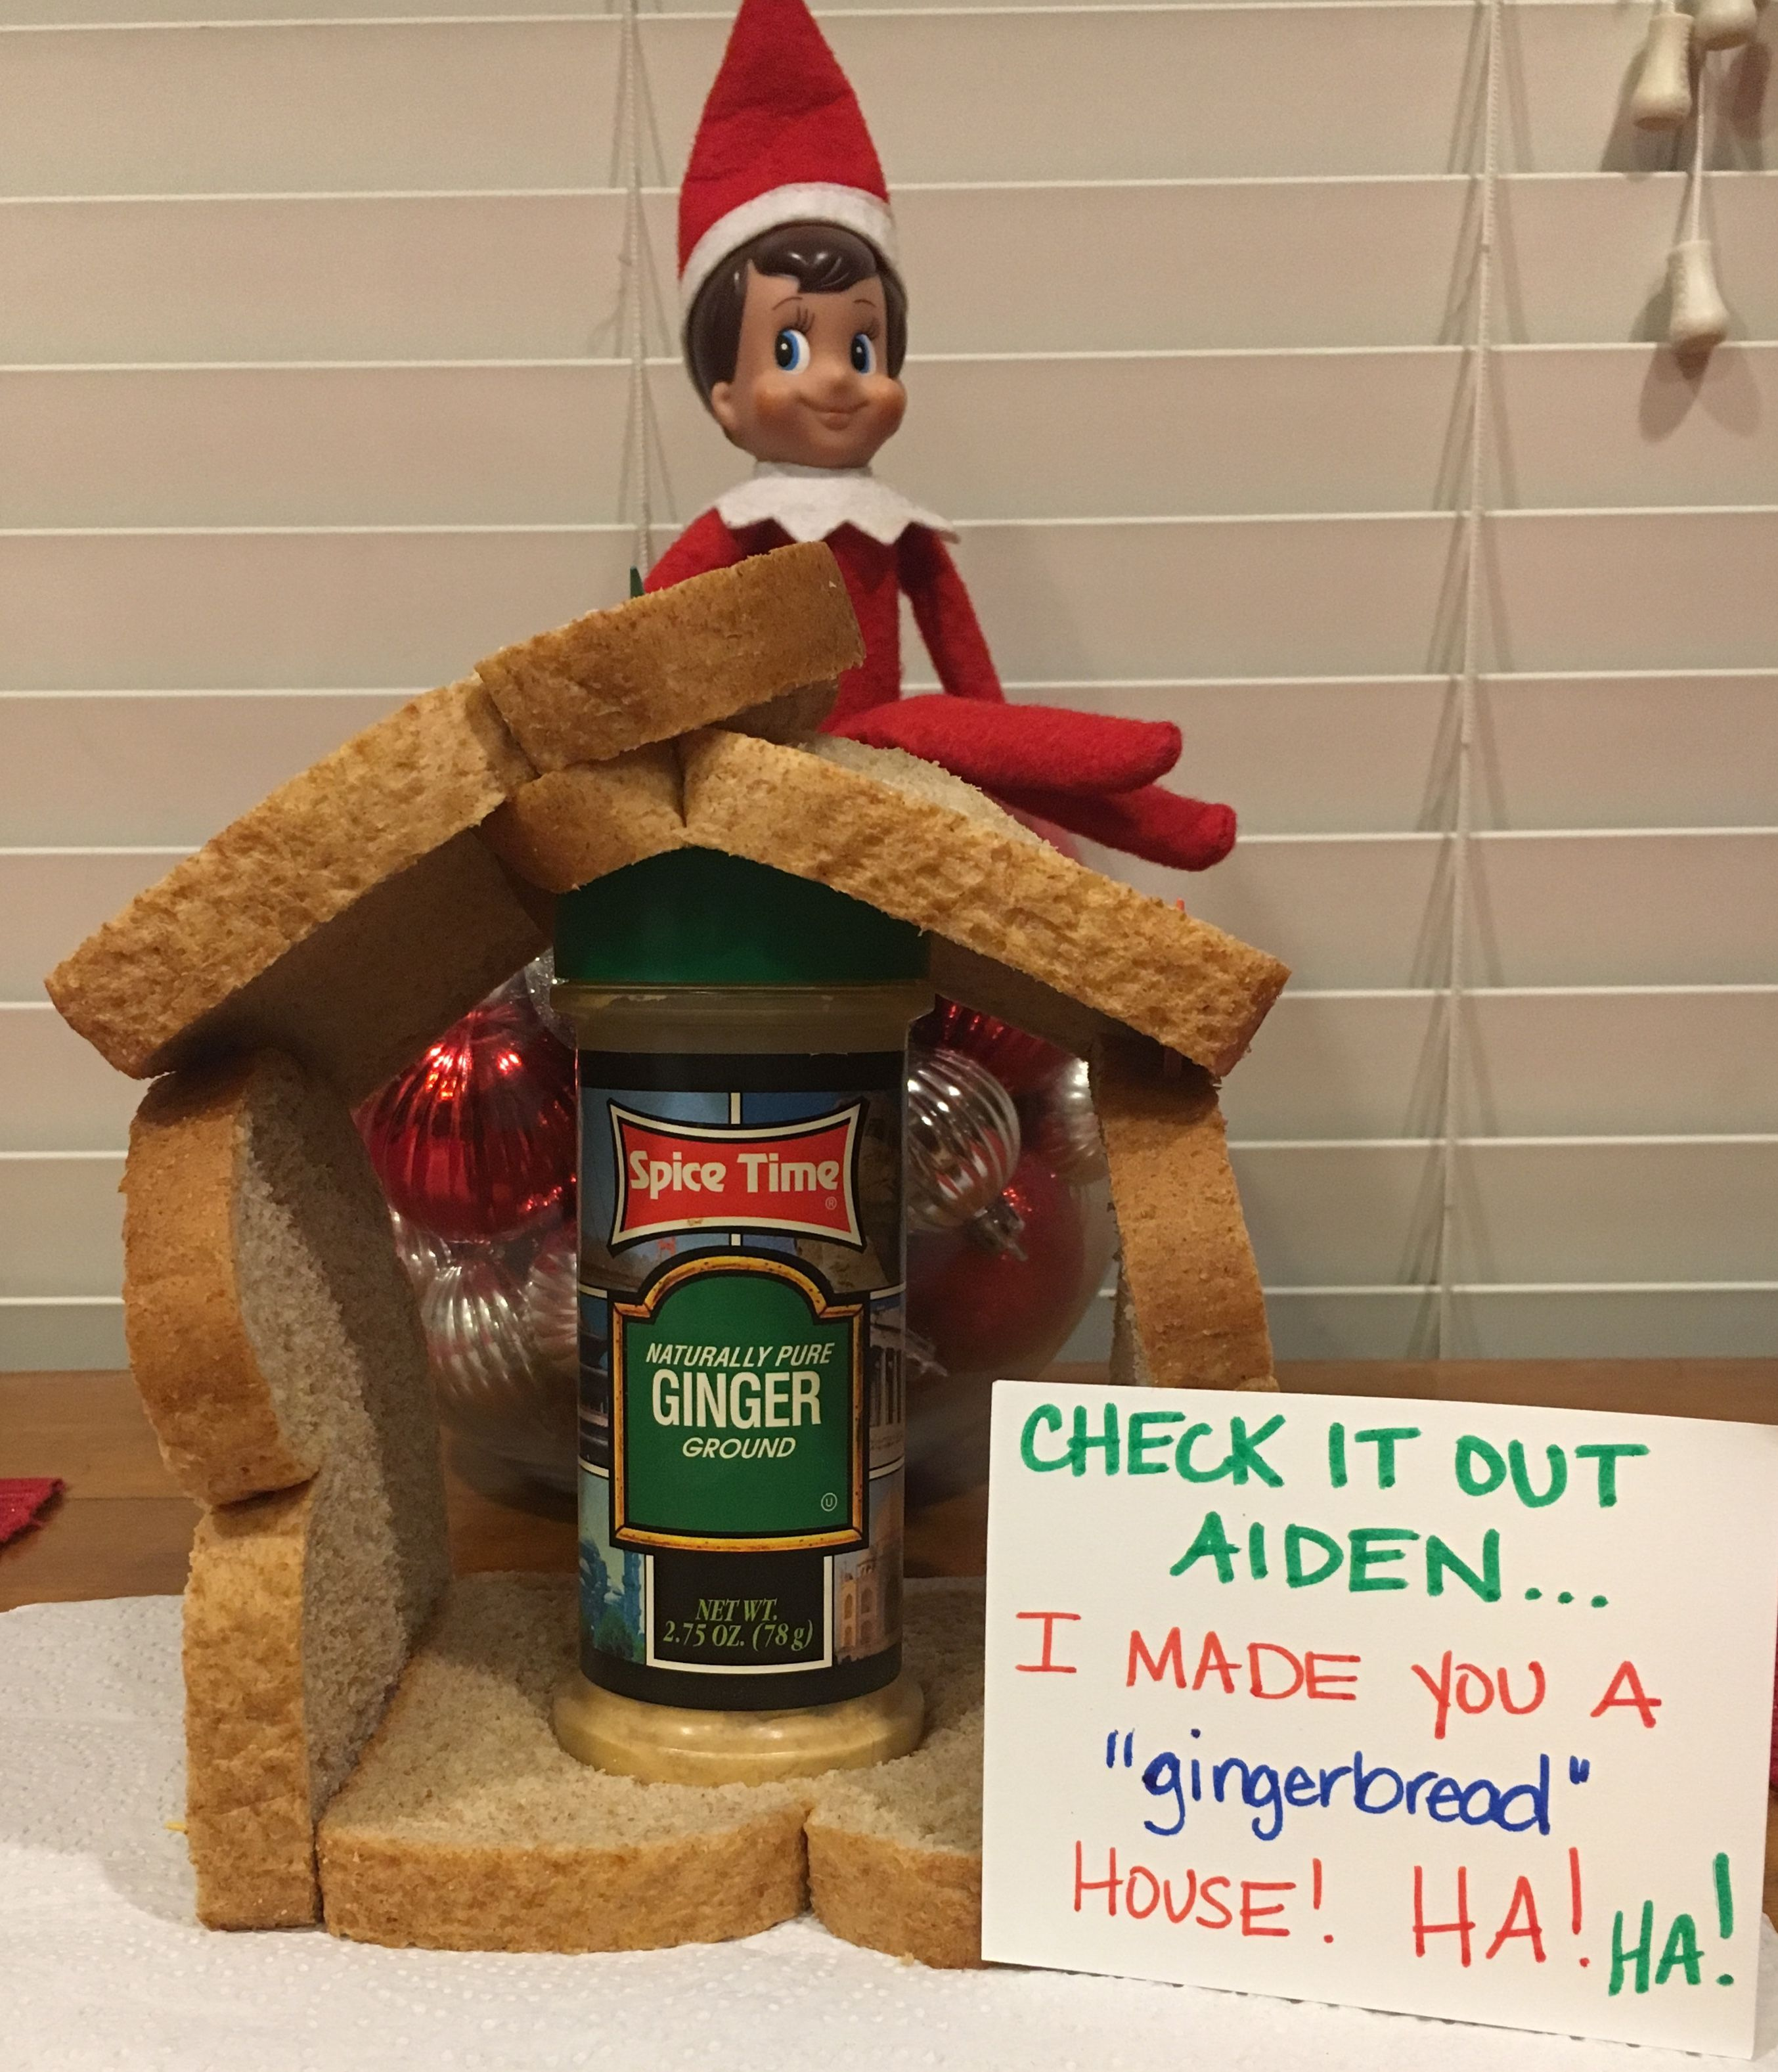 Pin by Amaya Chabrier on elf on the shelf Elf on the